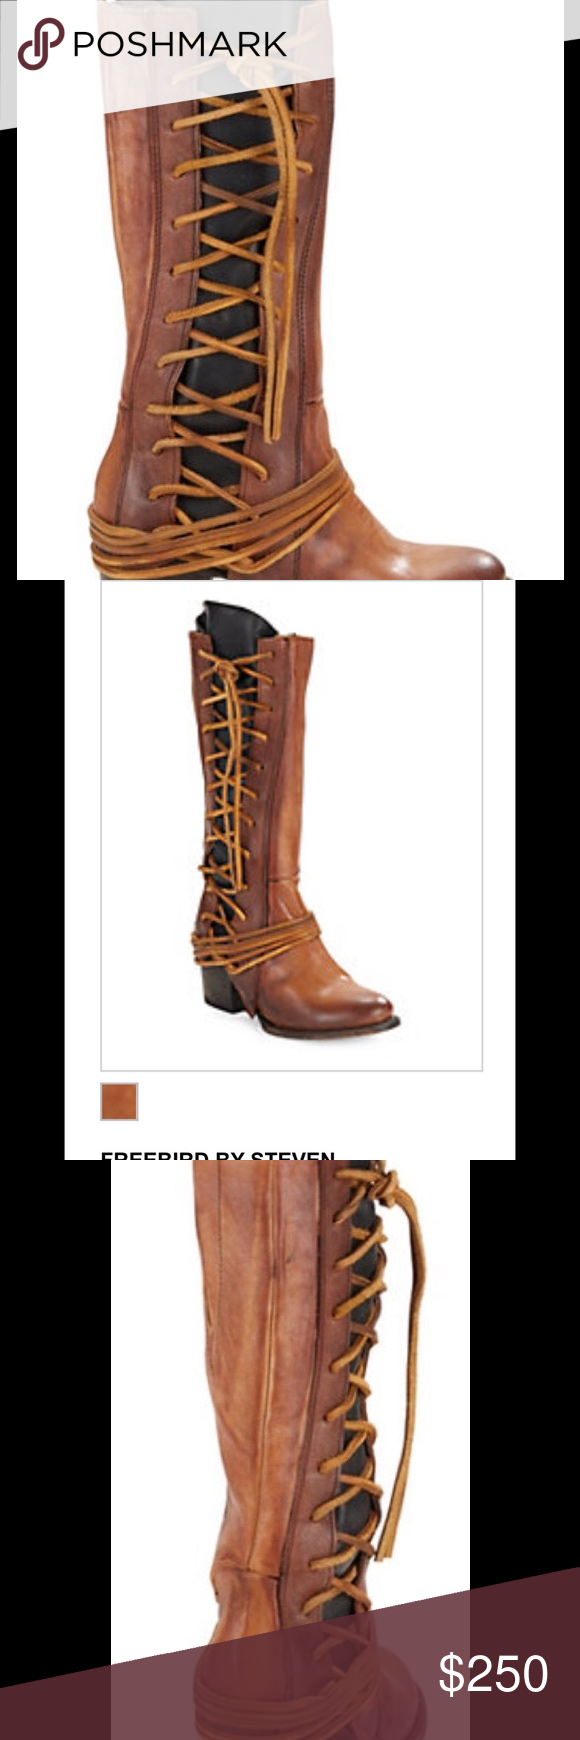 2547fae20 Spotted while shopping on Poshmark: Freebird by Steve cash boot NEW sizes  6-9! #poshmark #fashion #shopping #style #Steve Madden #Shoes